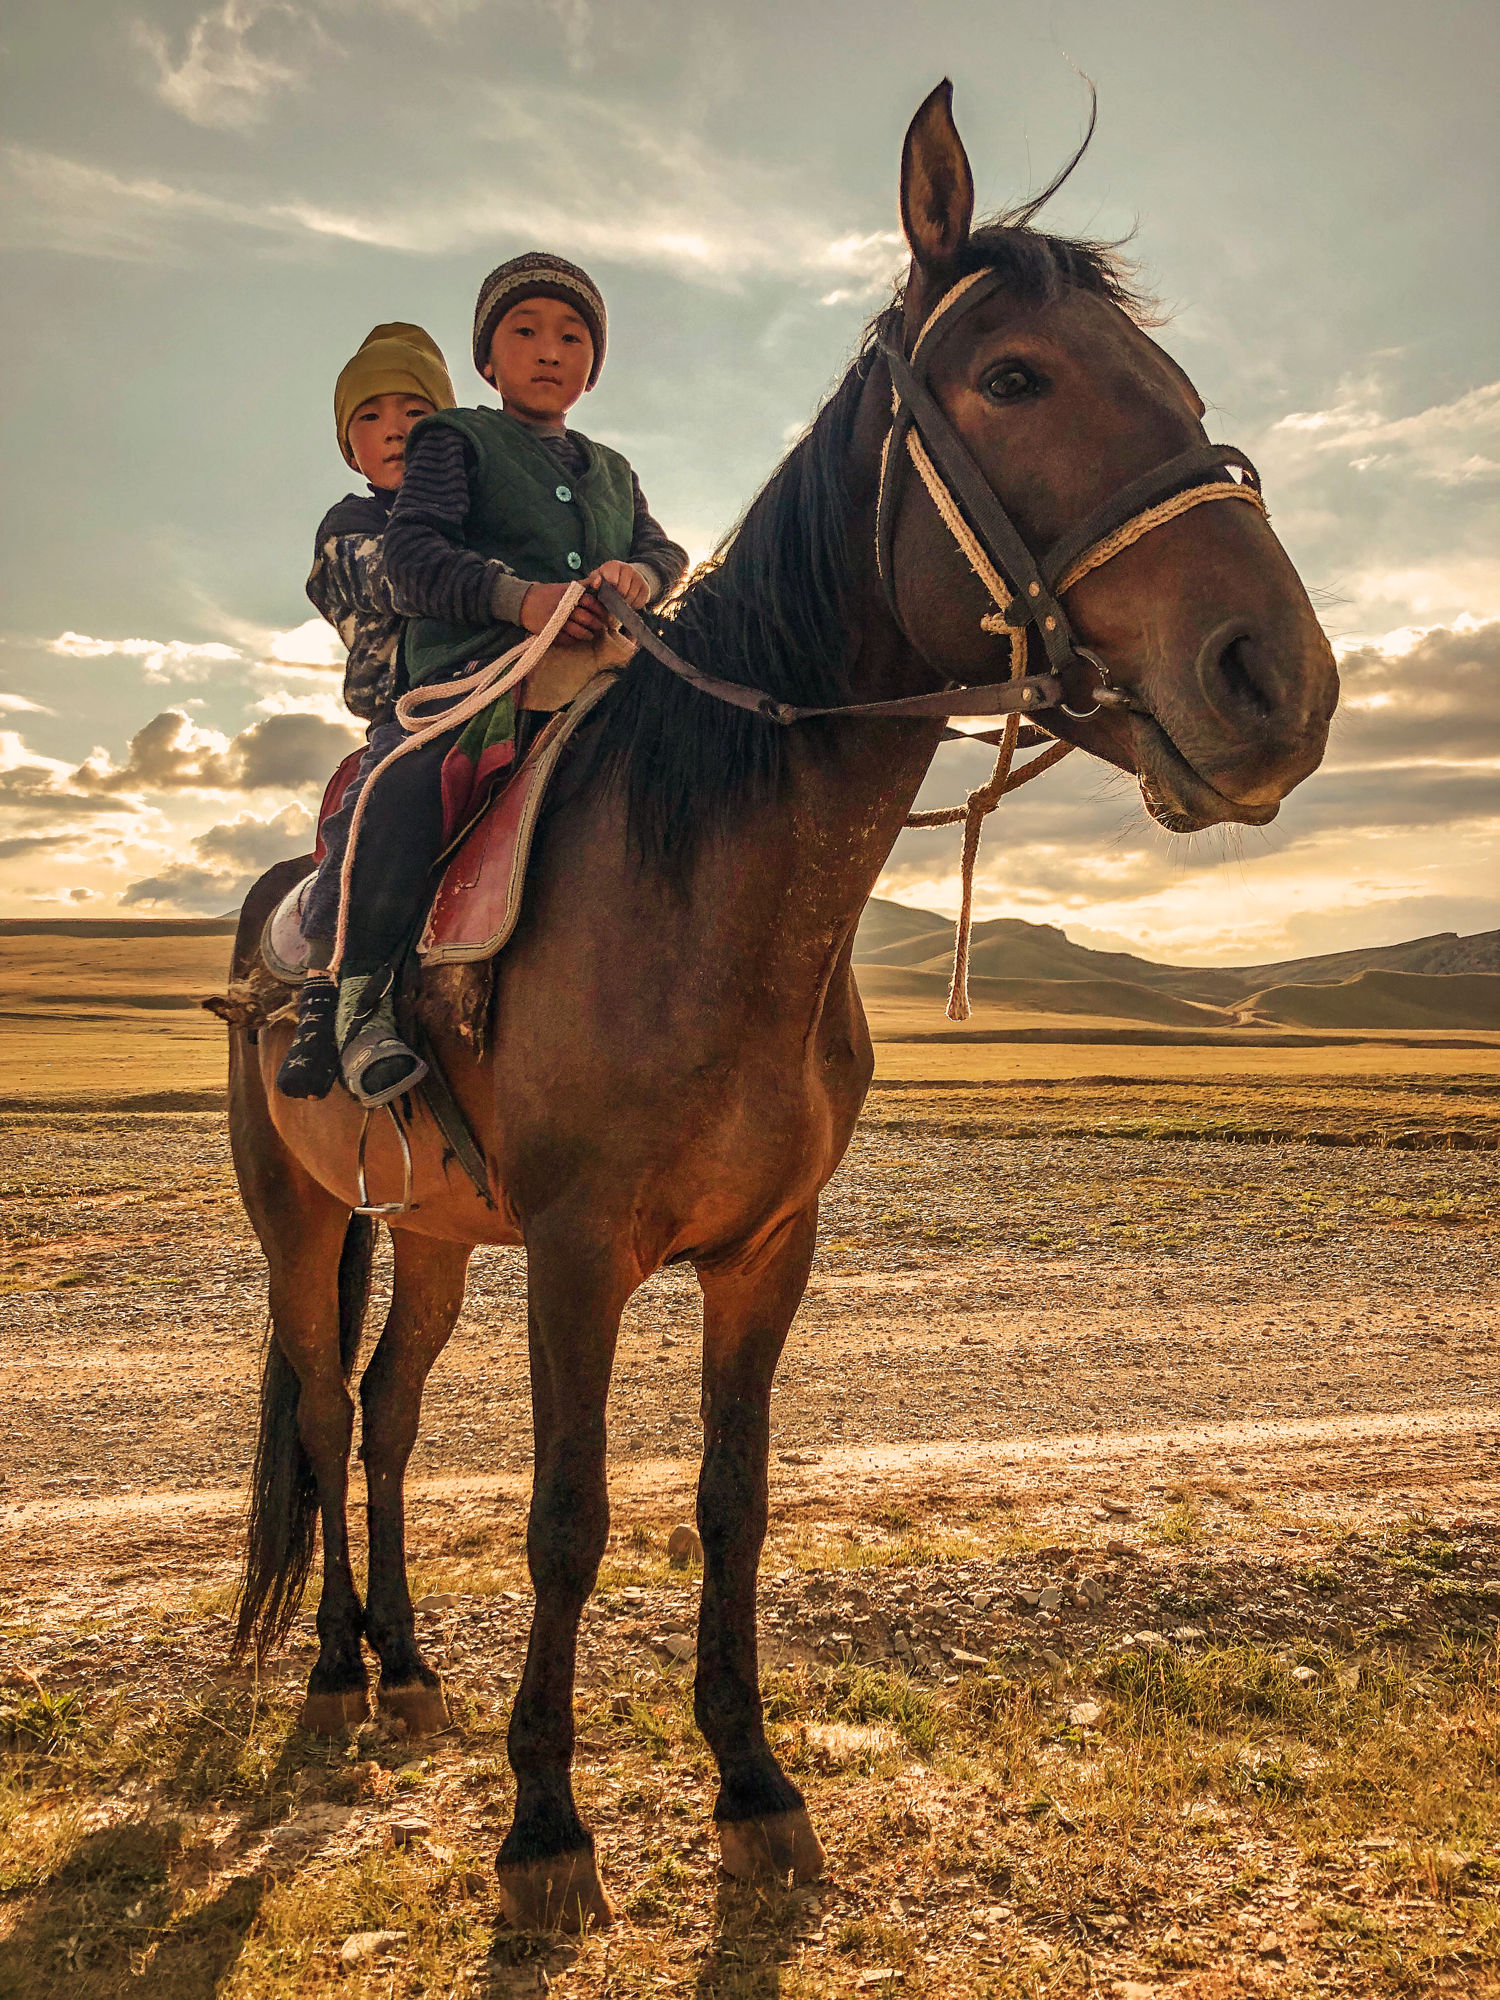 Kids on a horse.